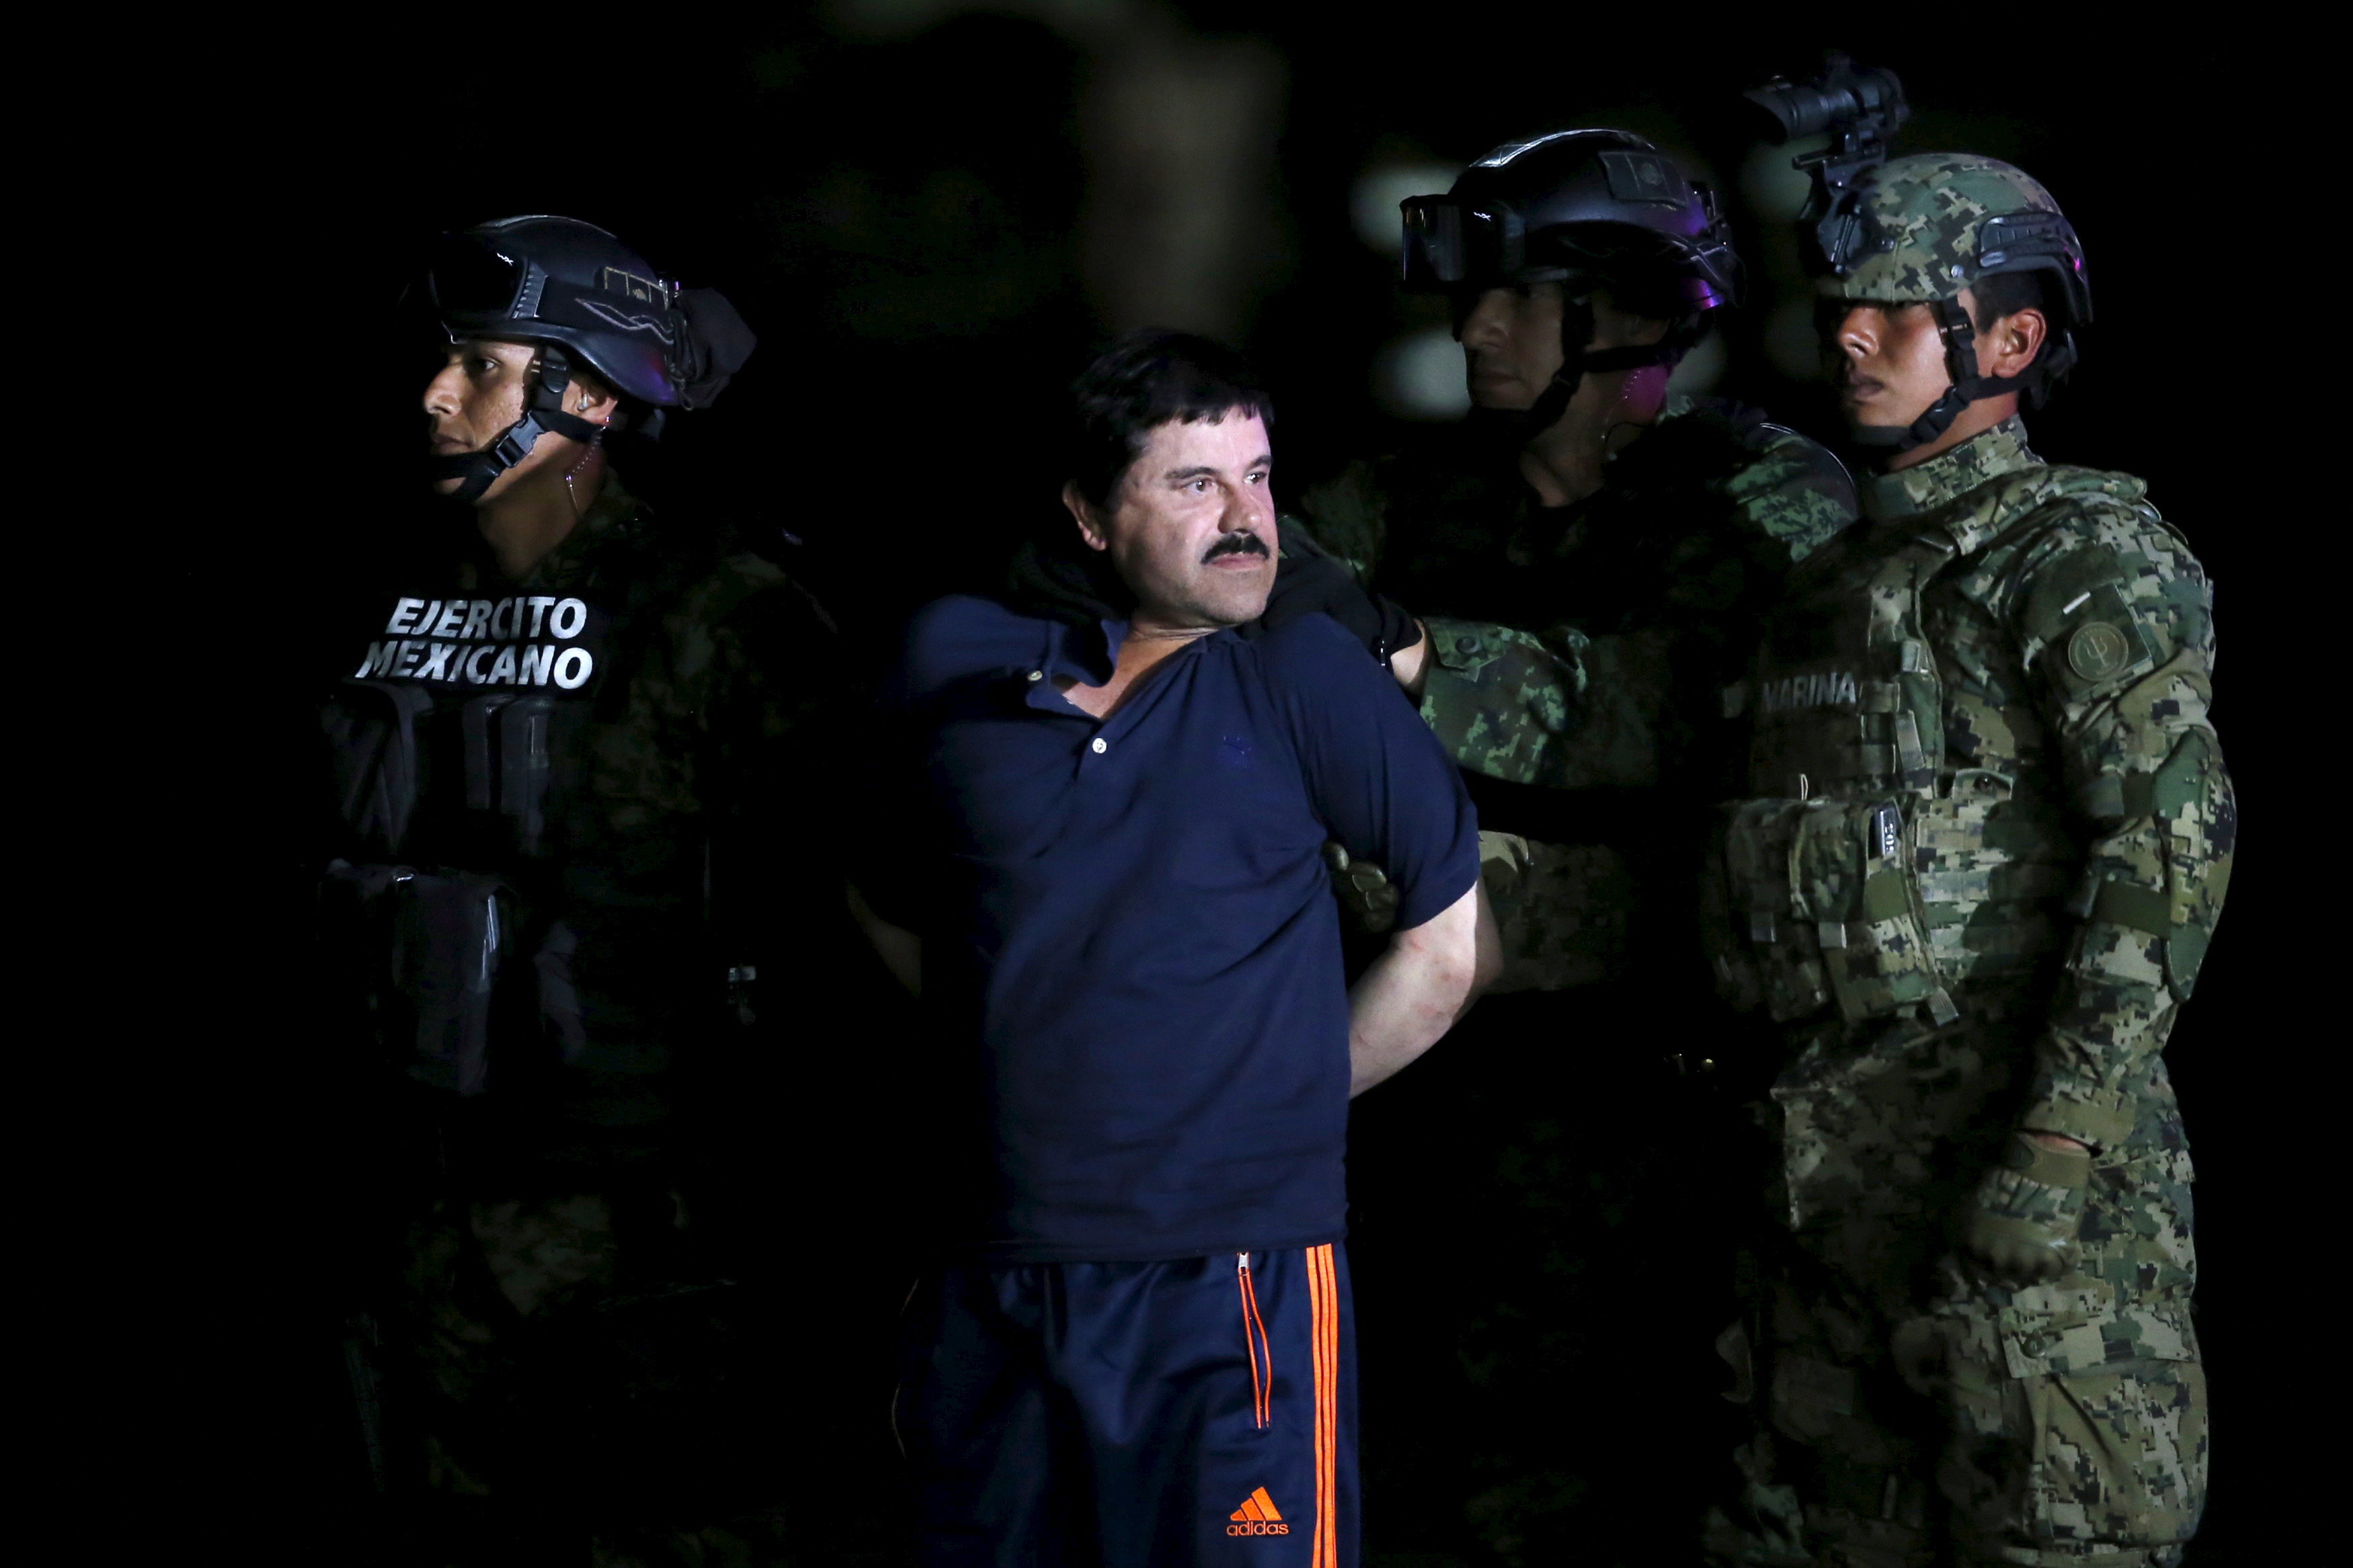 """Joaquin """"El Chapo"""" Guzman is escorted by soldiers during a presentation at the hangar belonging to the office of the Attorney General in Mexico City, Mexico January 8, 2016.  REUTERS/Edgard Garrido      TPX IMAGES OF THE DAY      - RTX21LRW"""